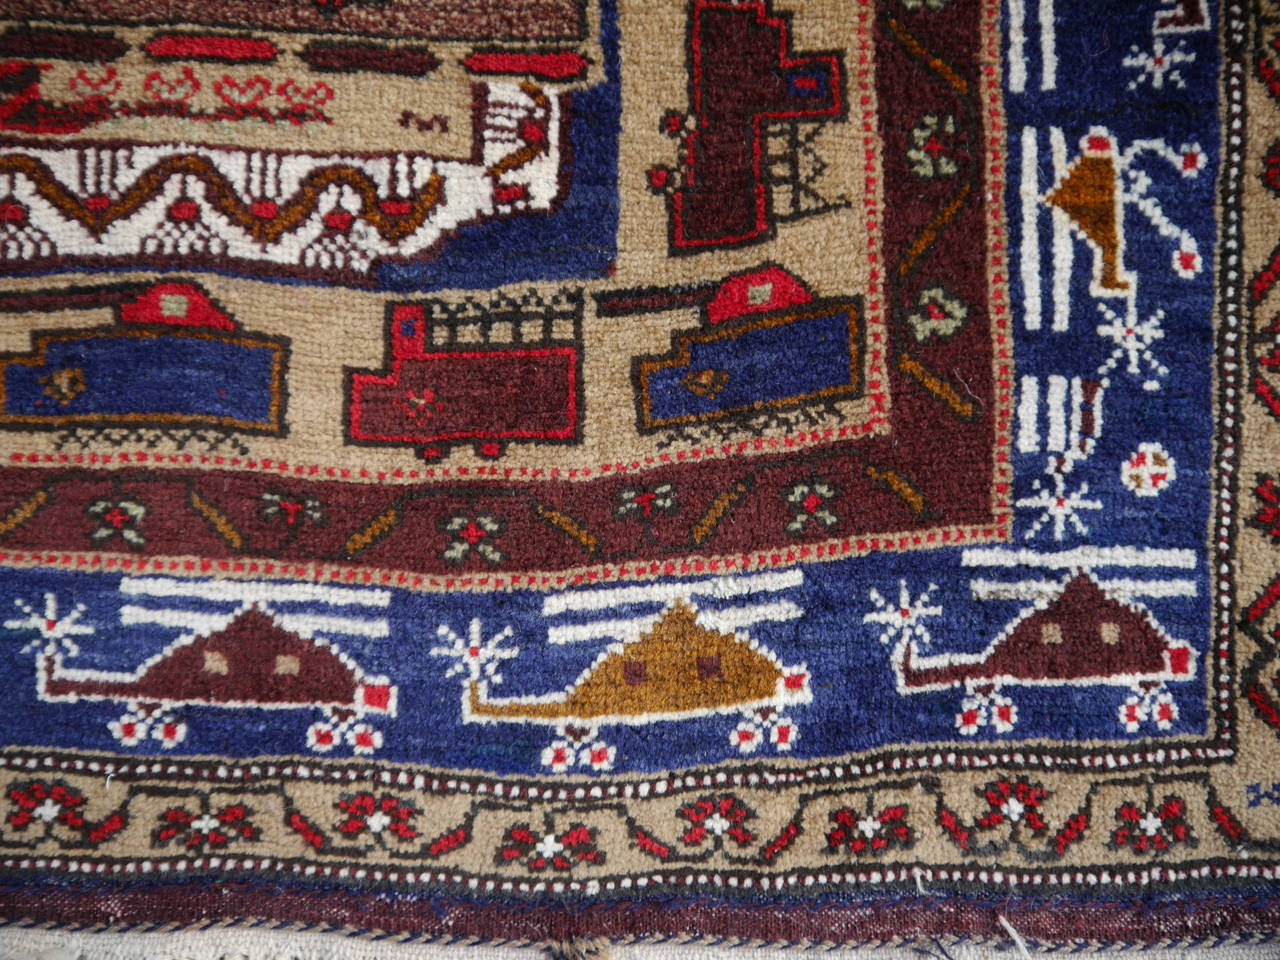 Vintage Afghan War Rug With Tanks And Helicopters For Sale